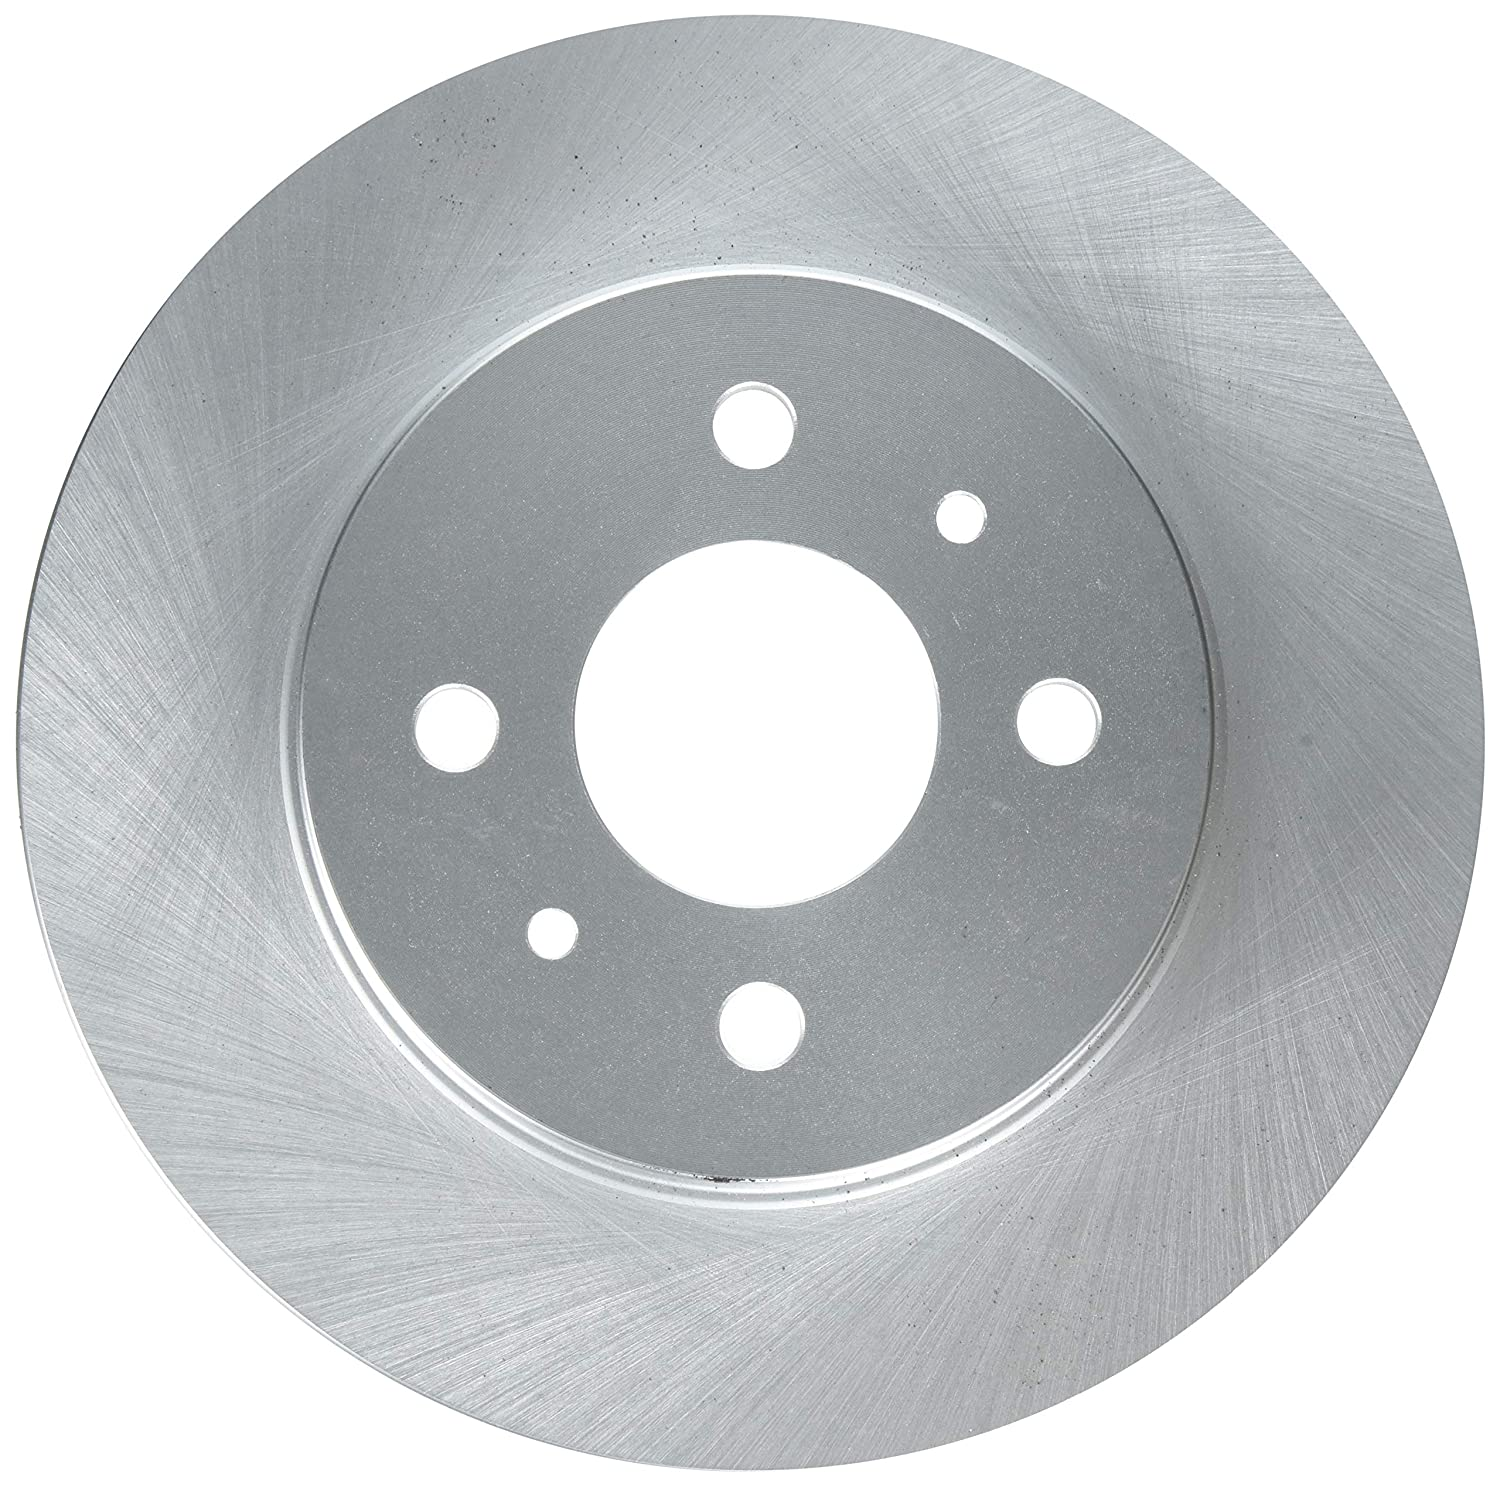 Raybestos 56169FZN Rust Prevention Technology Coated Rotor Brake